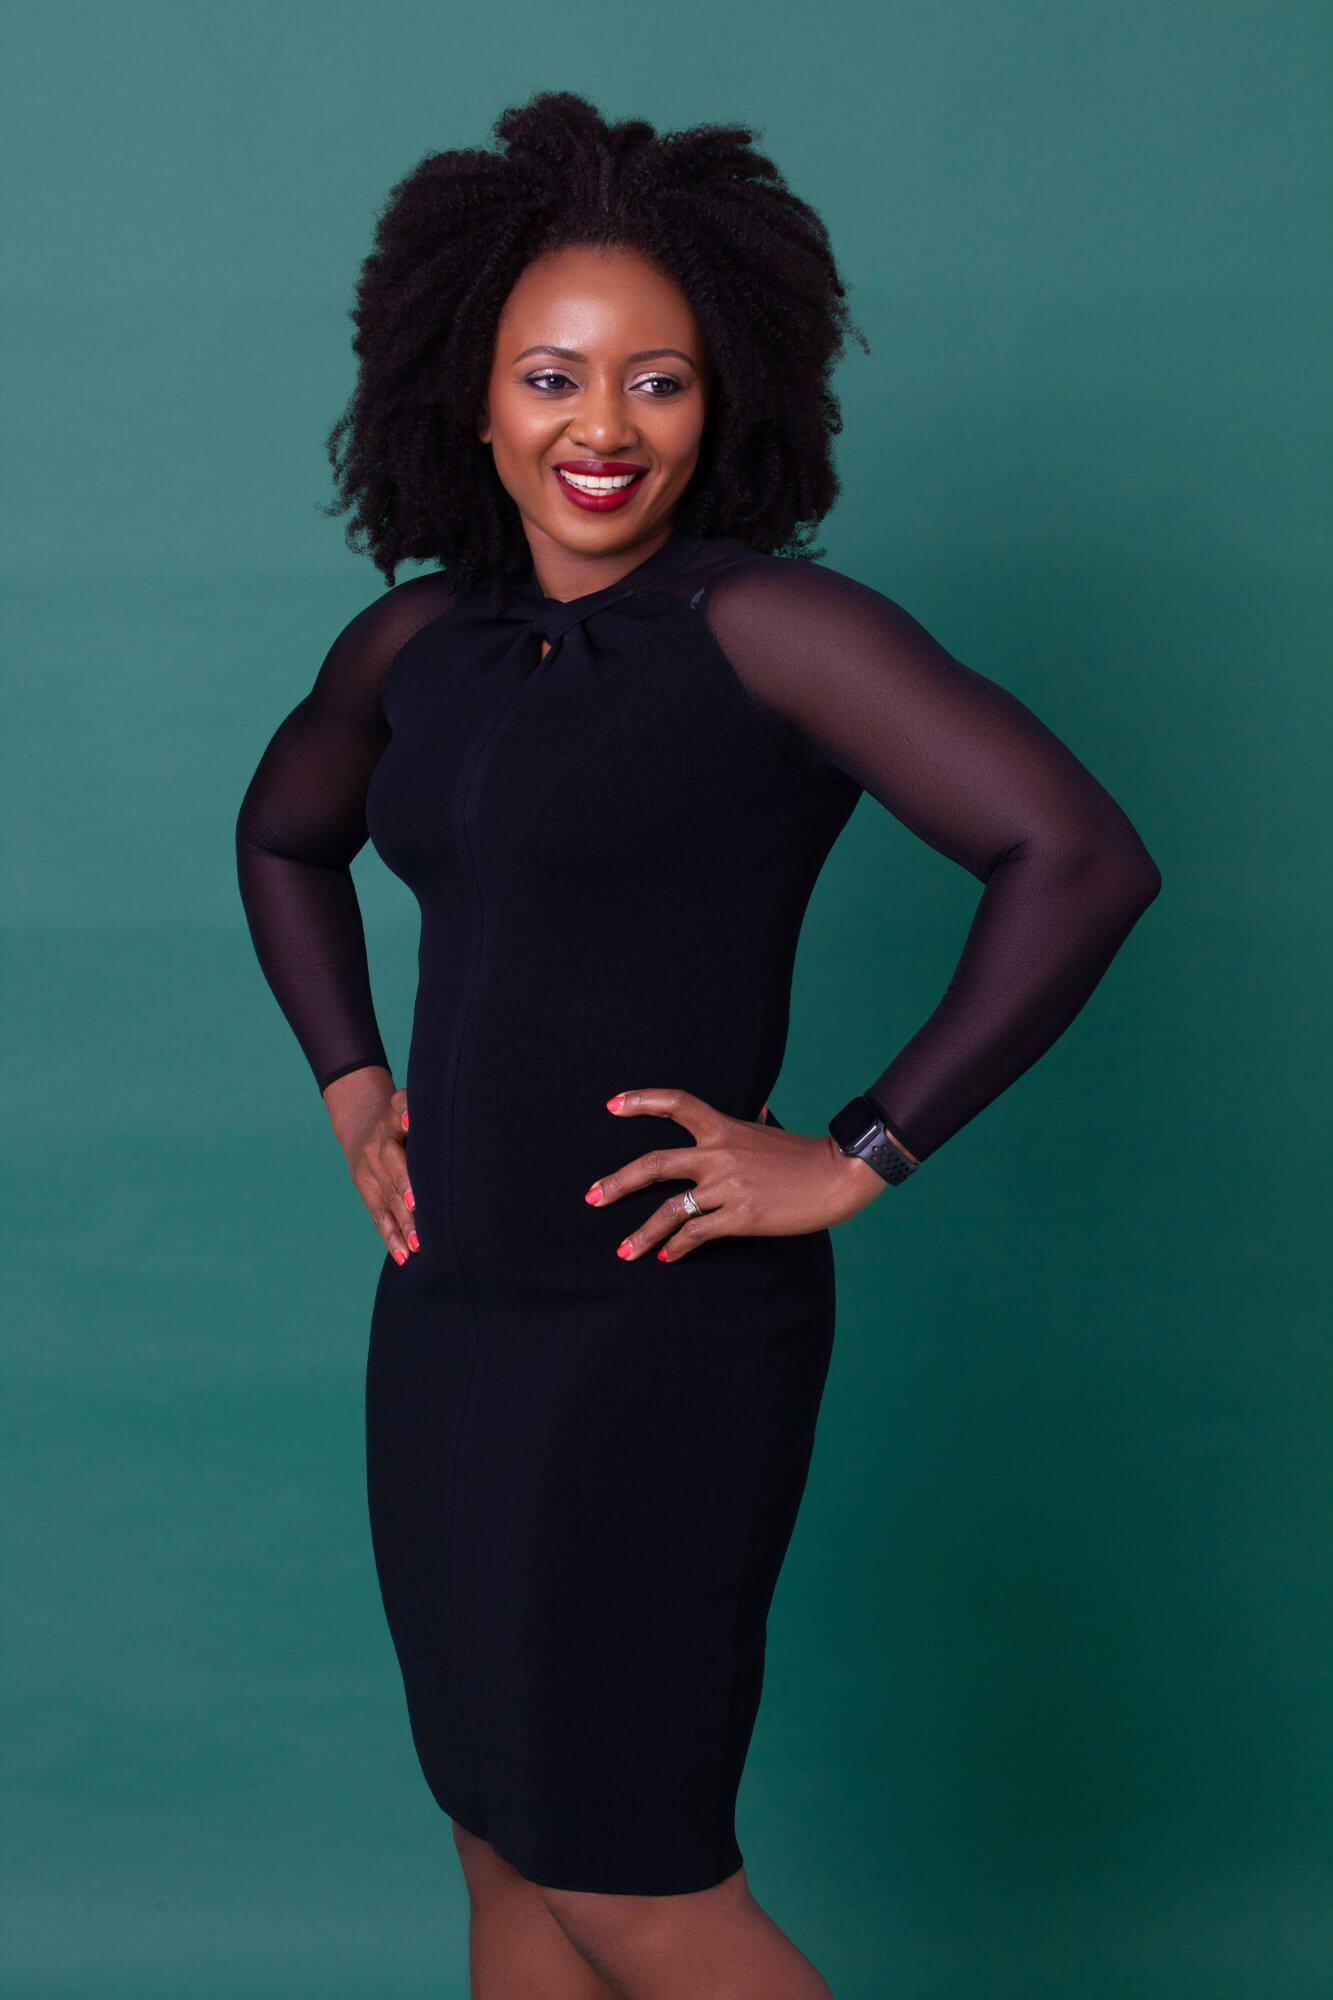 April Laugh in a back dress stood in front of a dark green background.